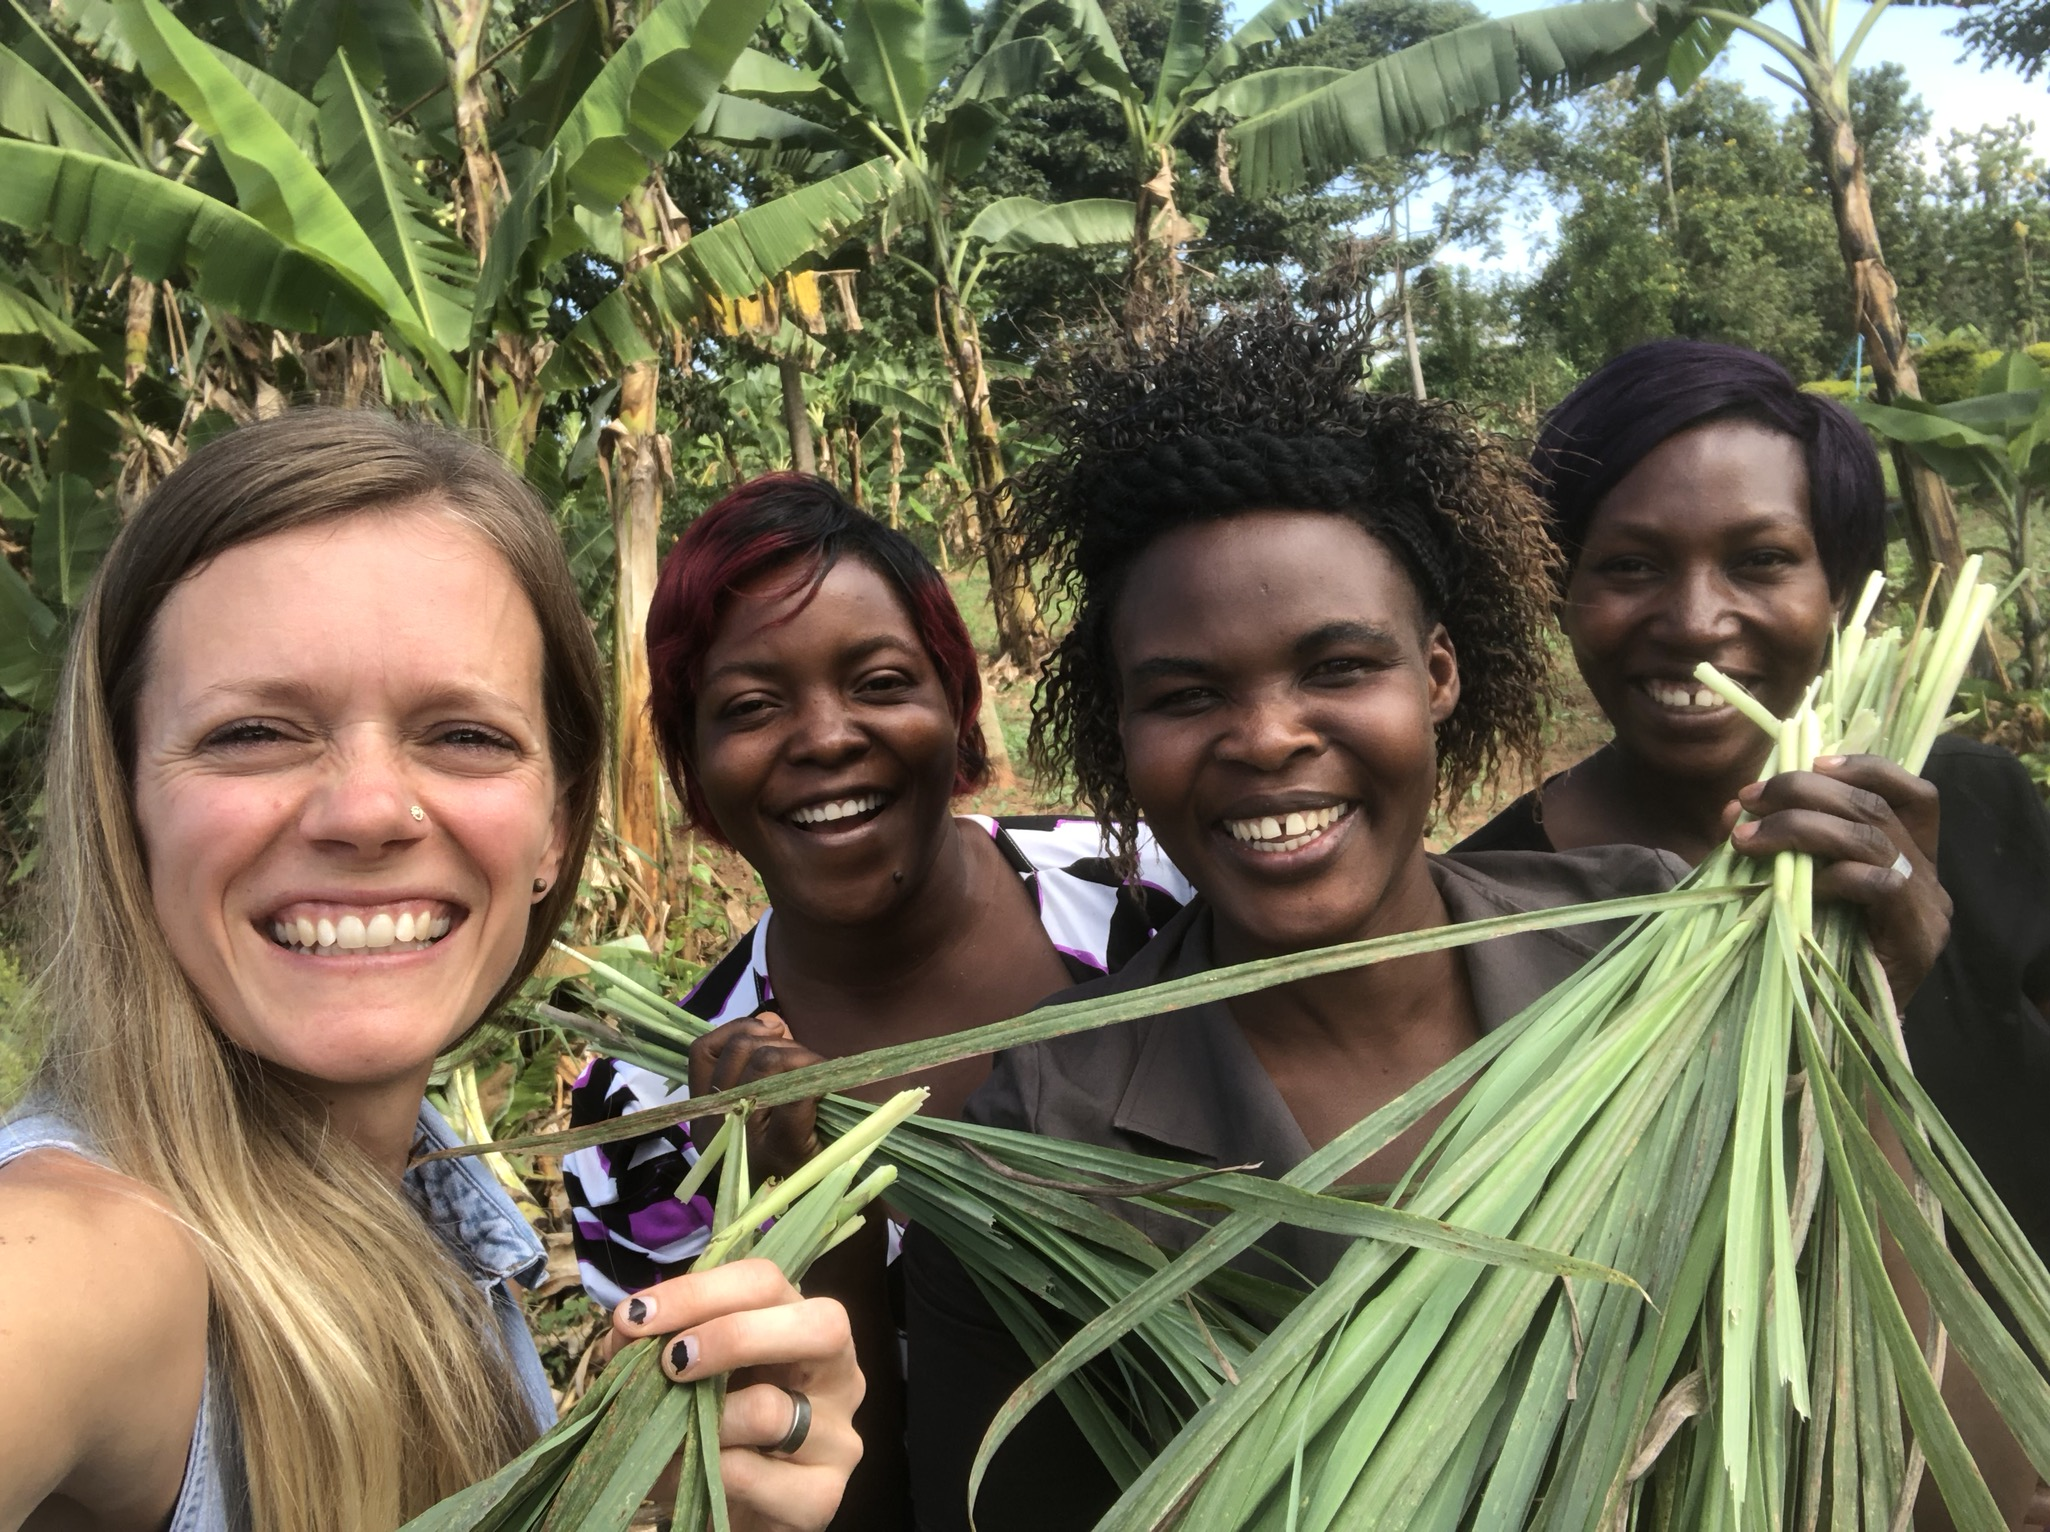 Grace (left) with our female cooperatives in Uganda: Josephine Nakimuli, Cissy Namukisa, and Annette Nabugo, harvesting lemongrass on our East Africa campus.